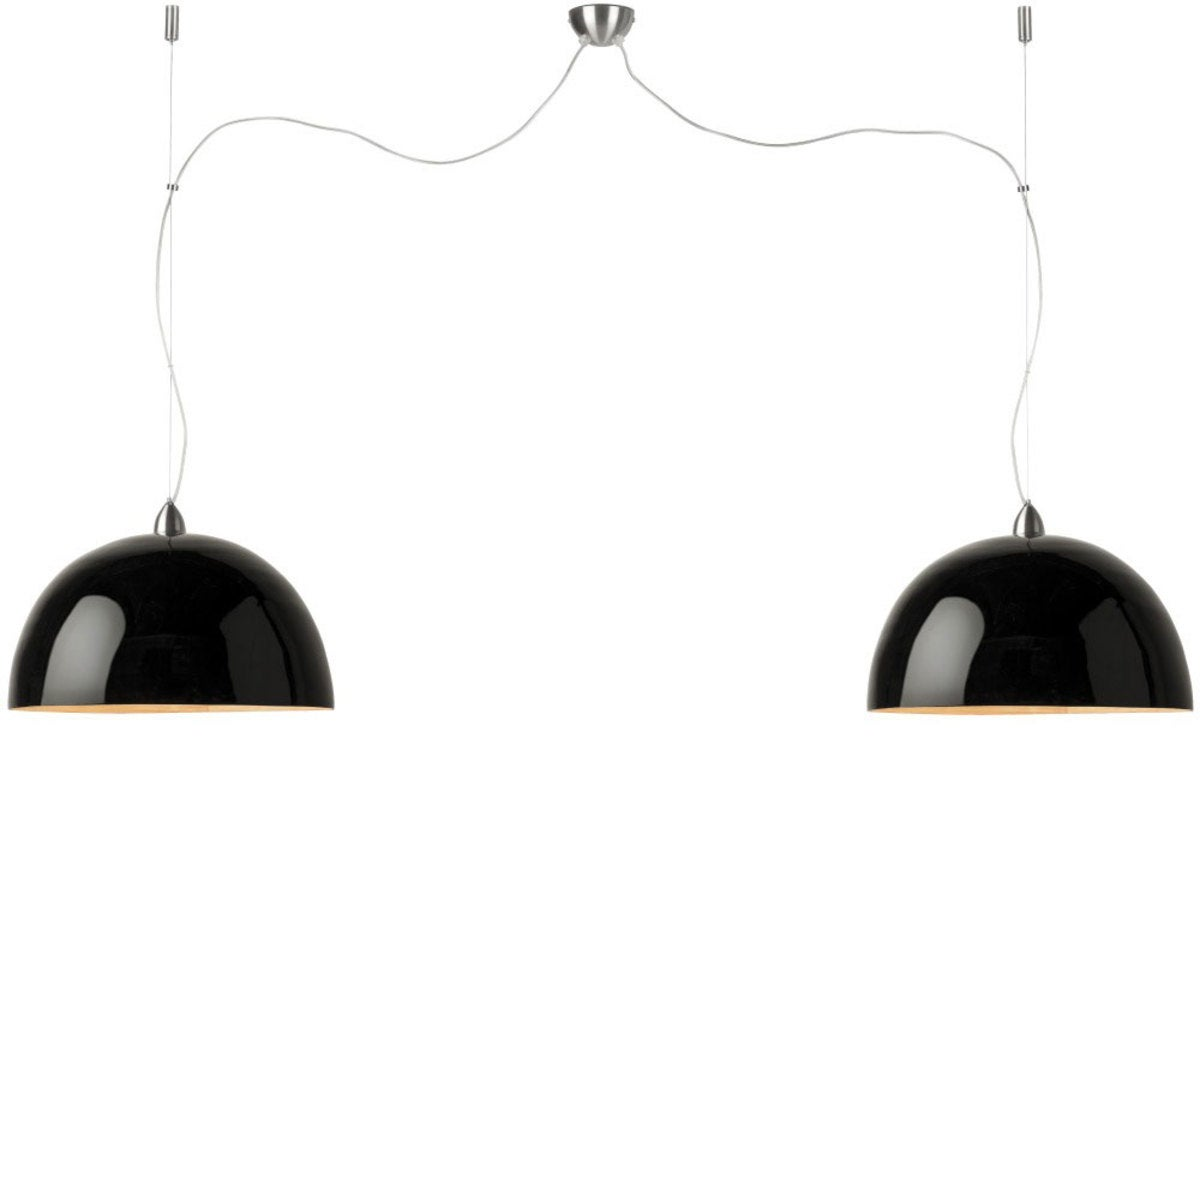 Halong Bamboo Hanging Double Lamp